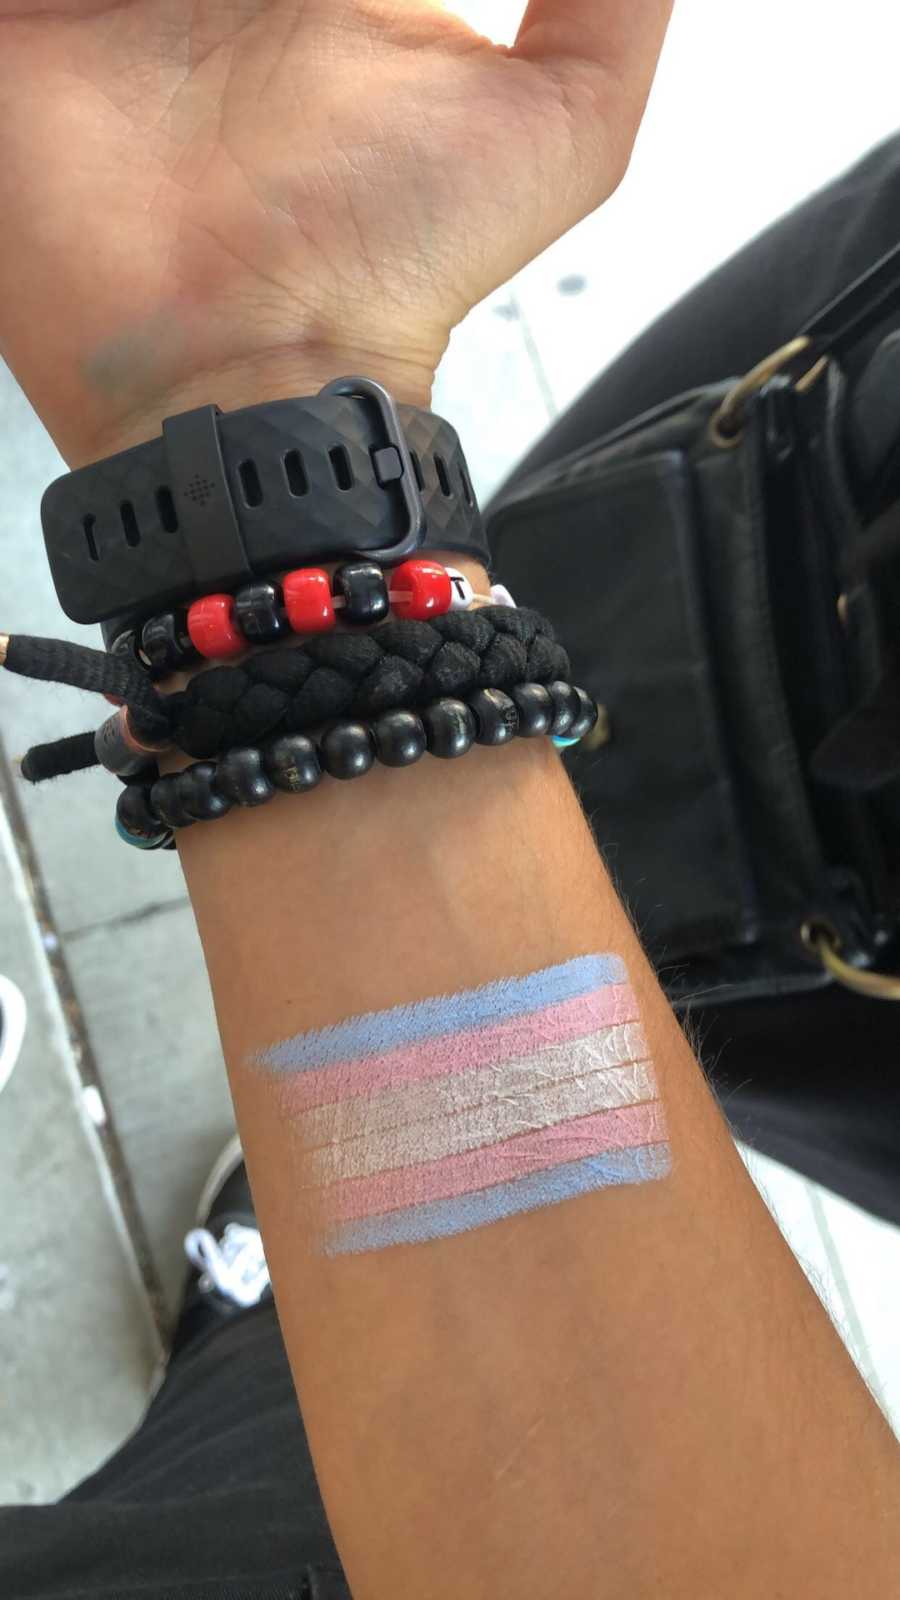 trans flag painted on a wrist